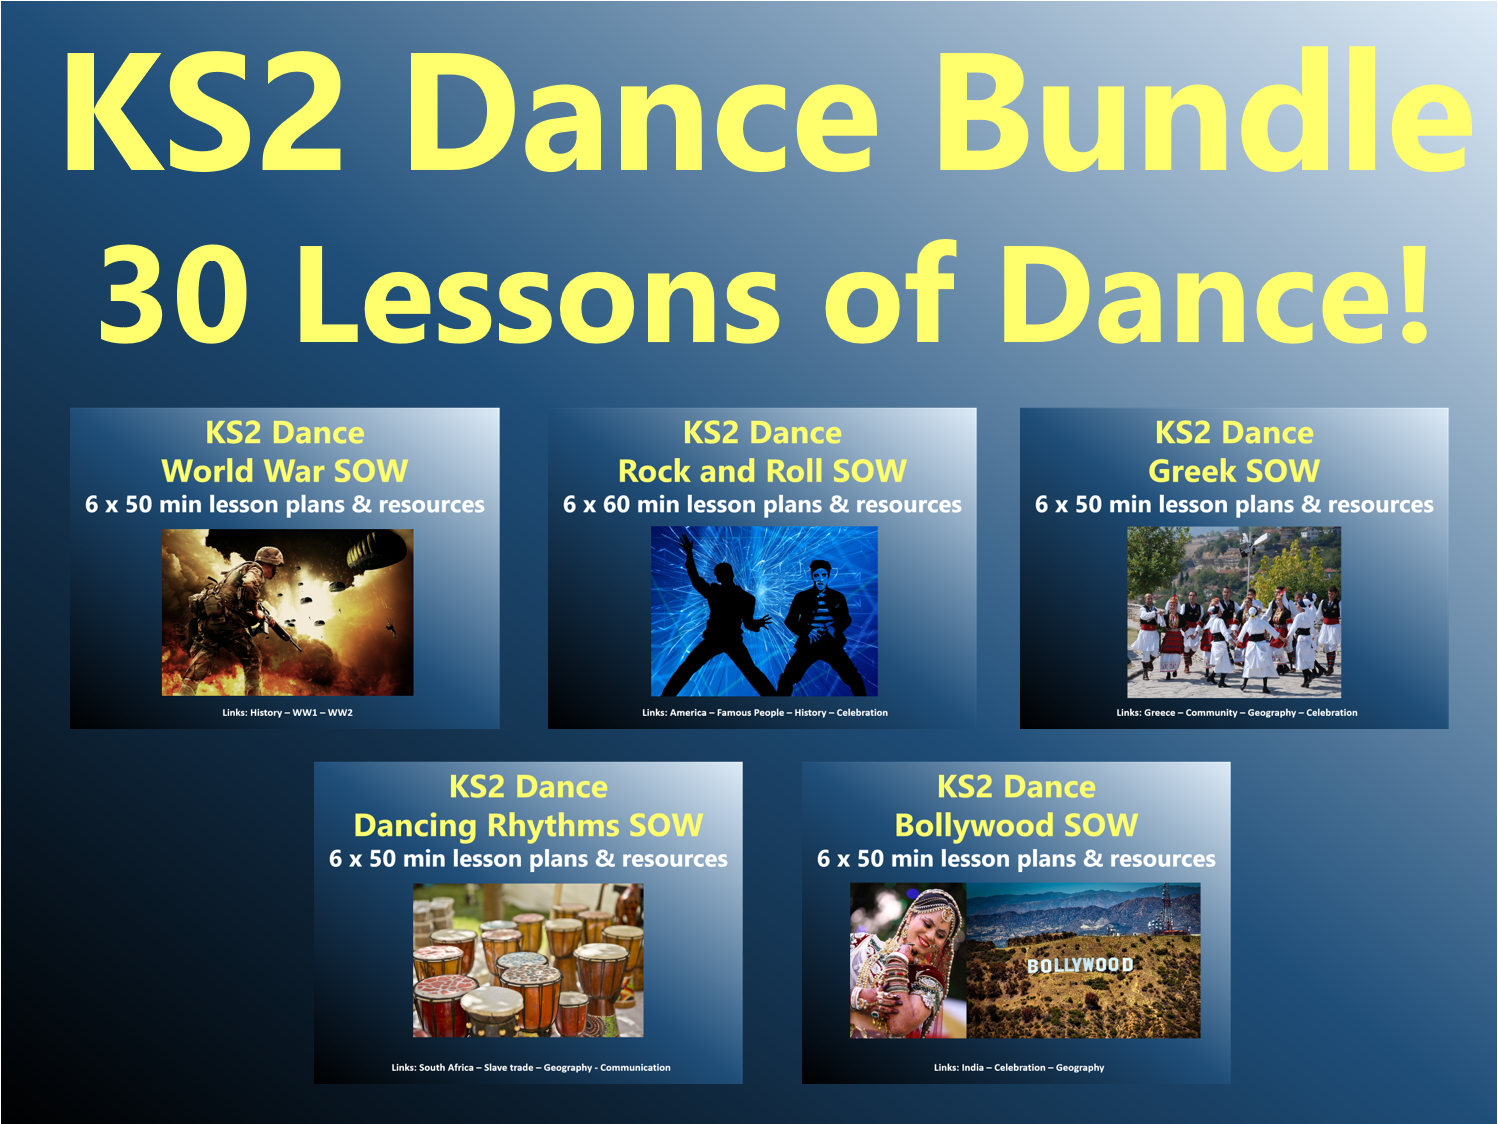 KS2 Dance Bundle – 30 Lessons of Dance!